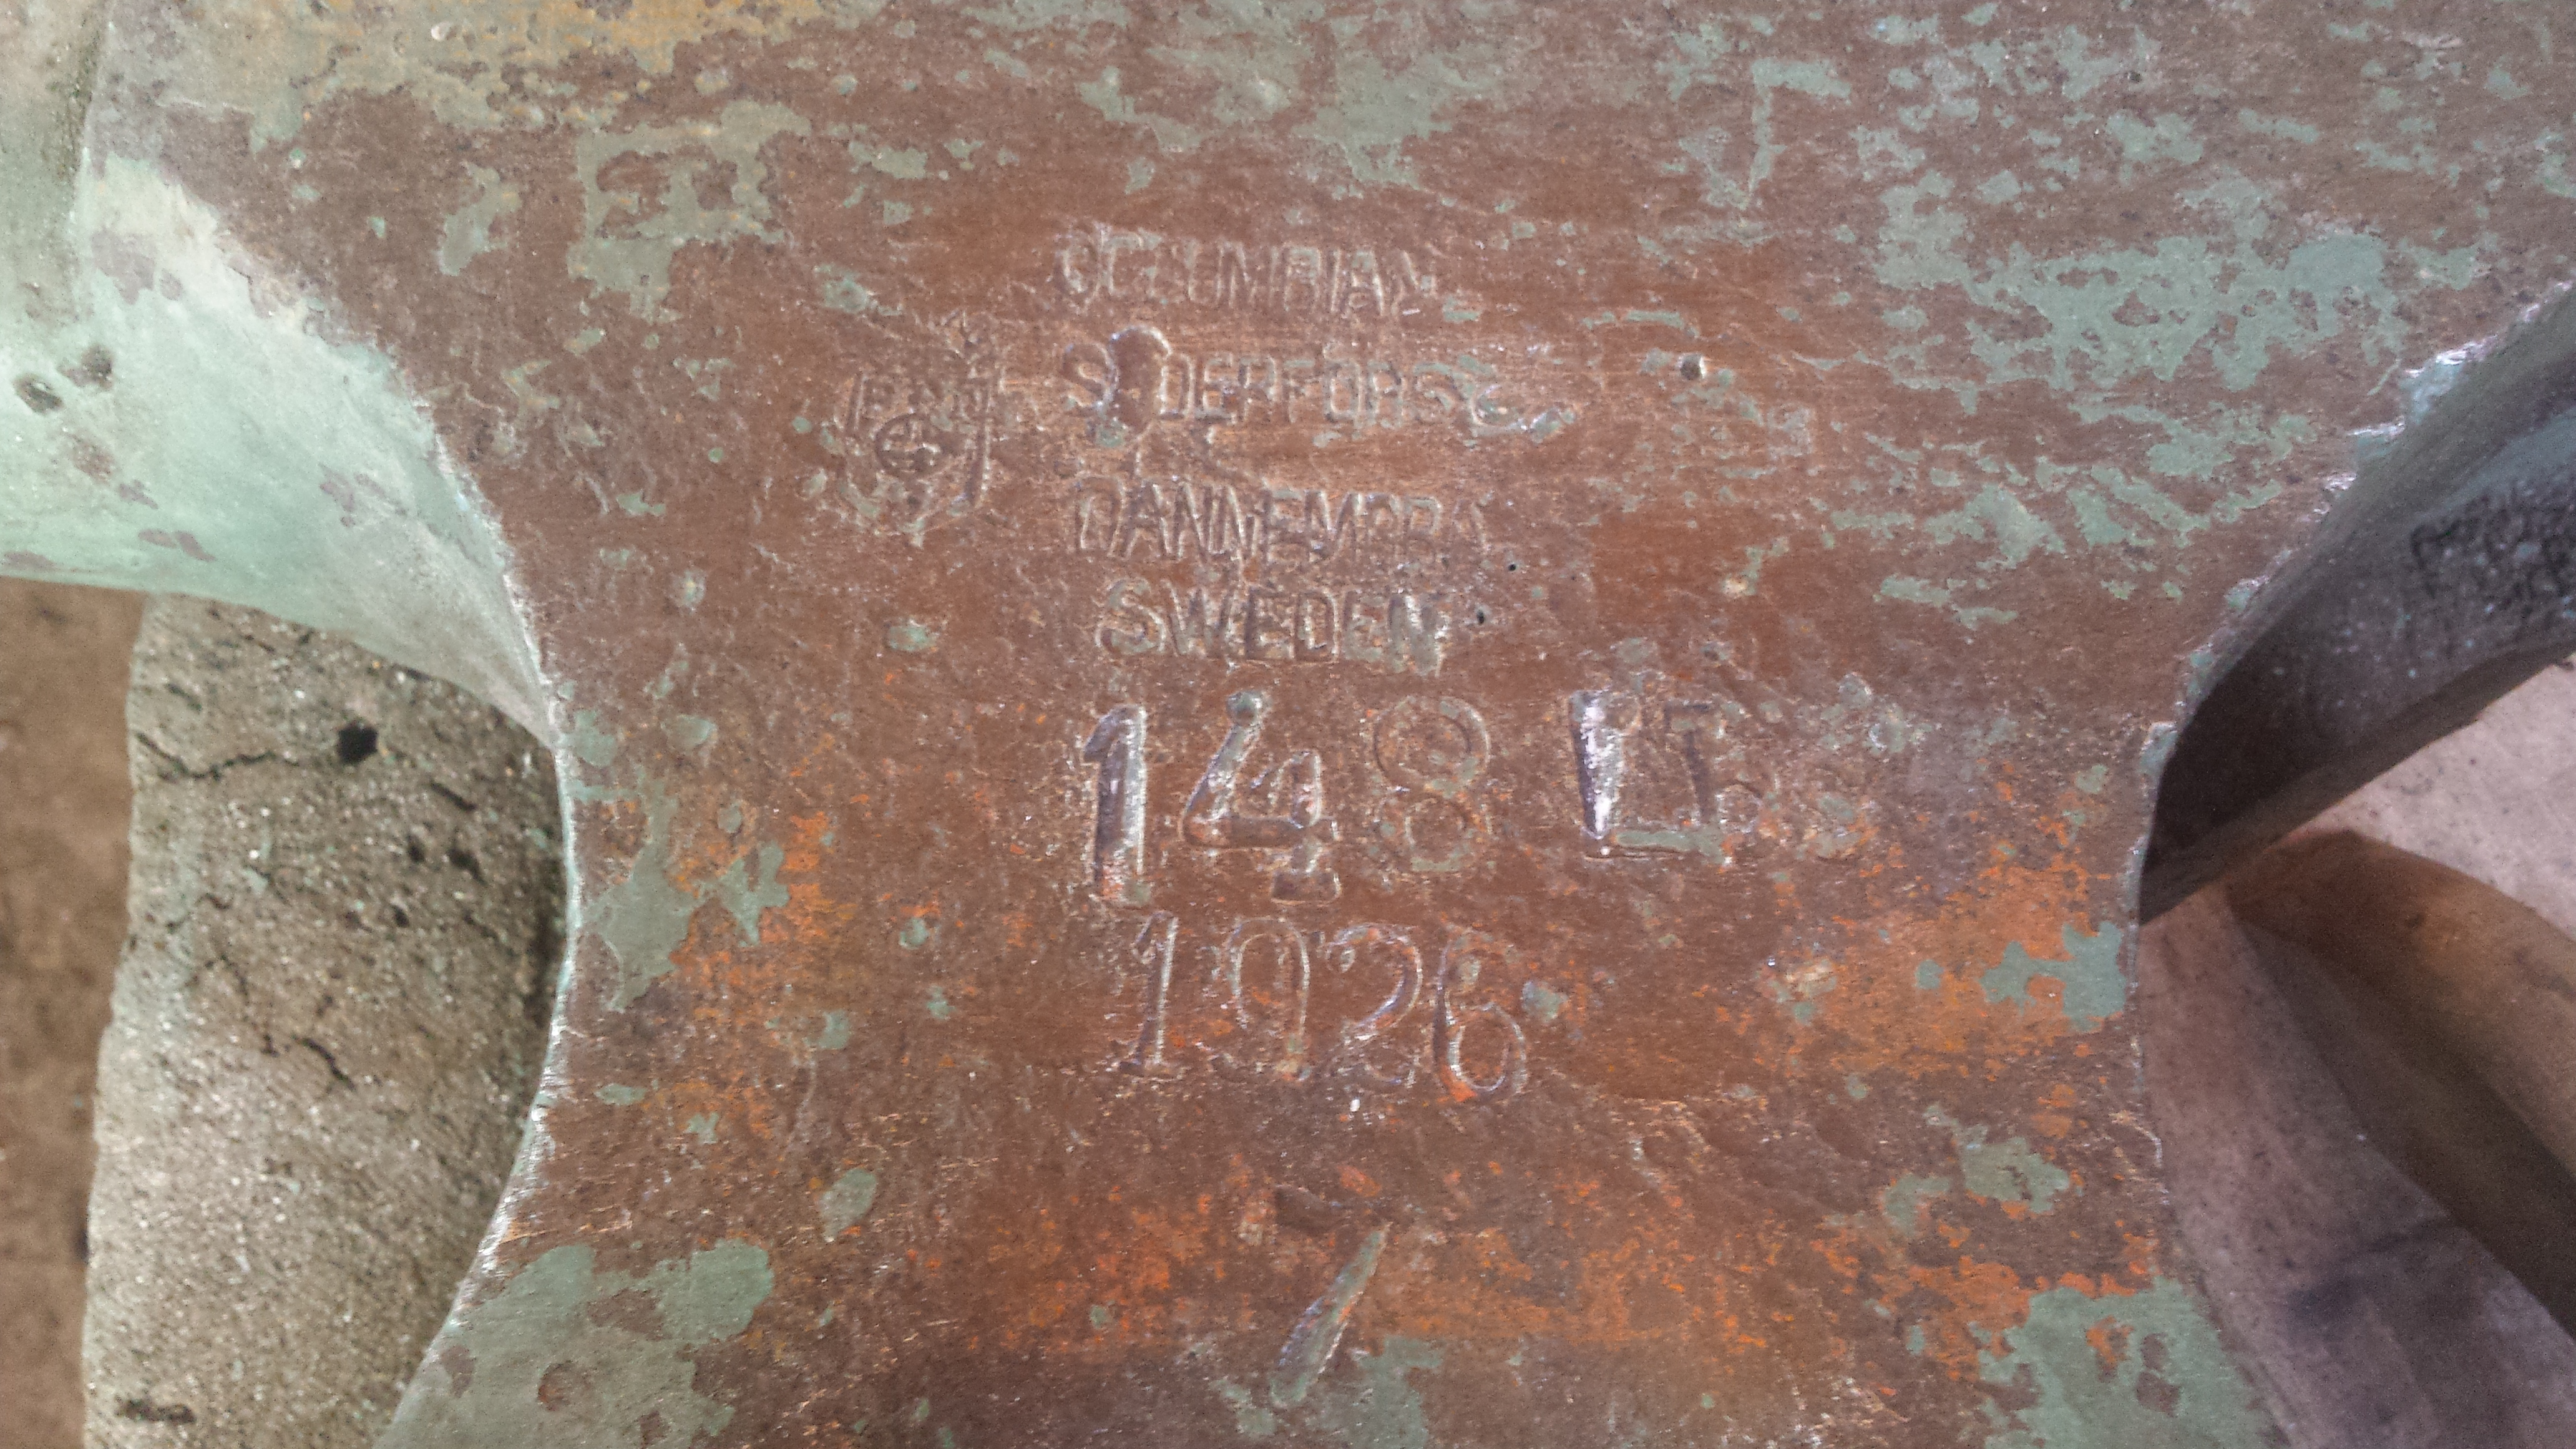 Soderfor FORGED steel anvil or not? - Anvils, Swage Blocks, and